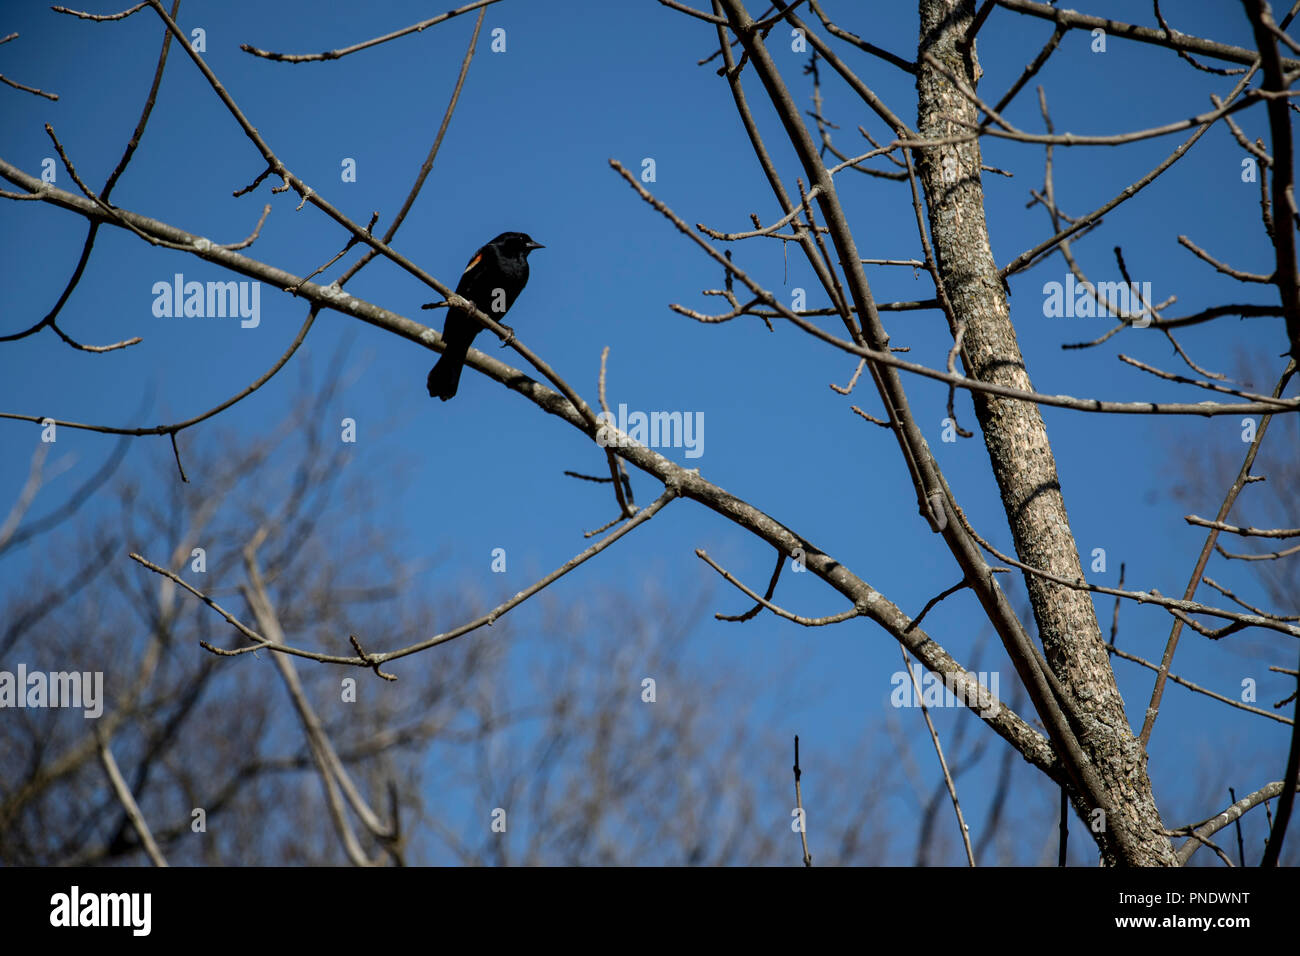 Black bird sitting perched in a tree branch outside in the woods. - Stock Image